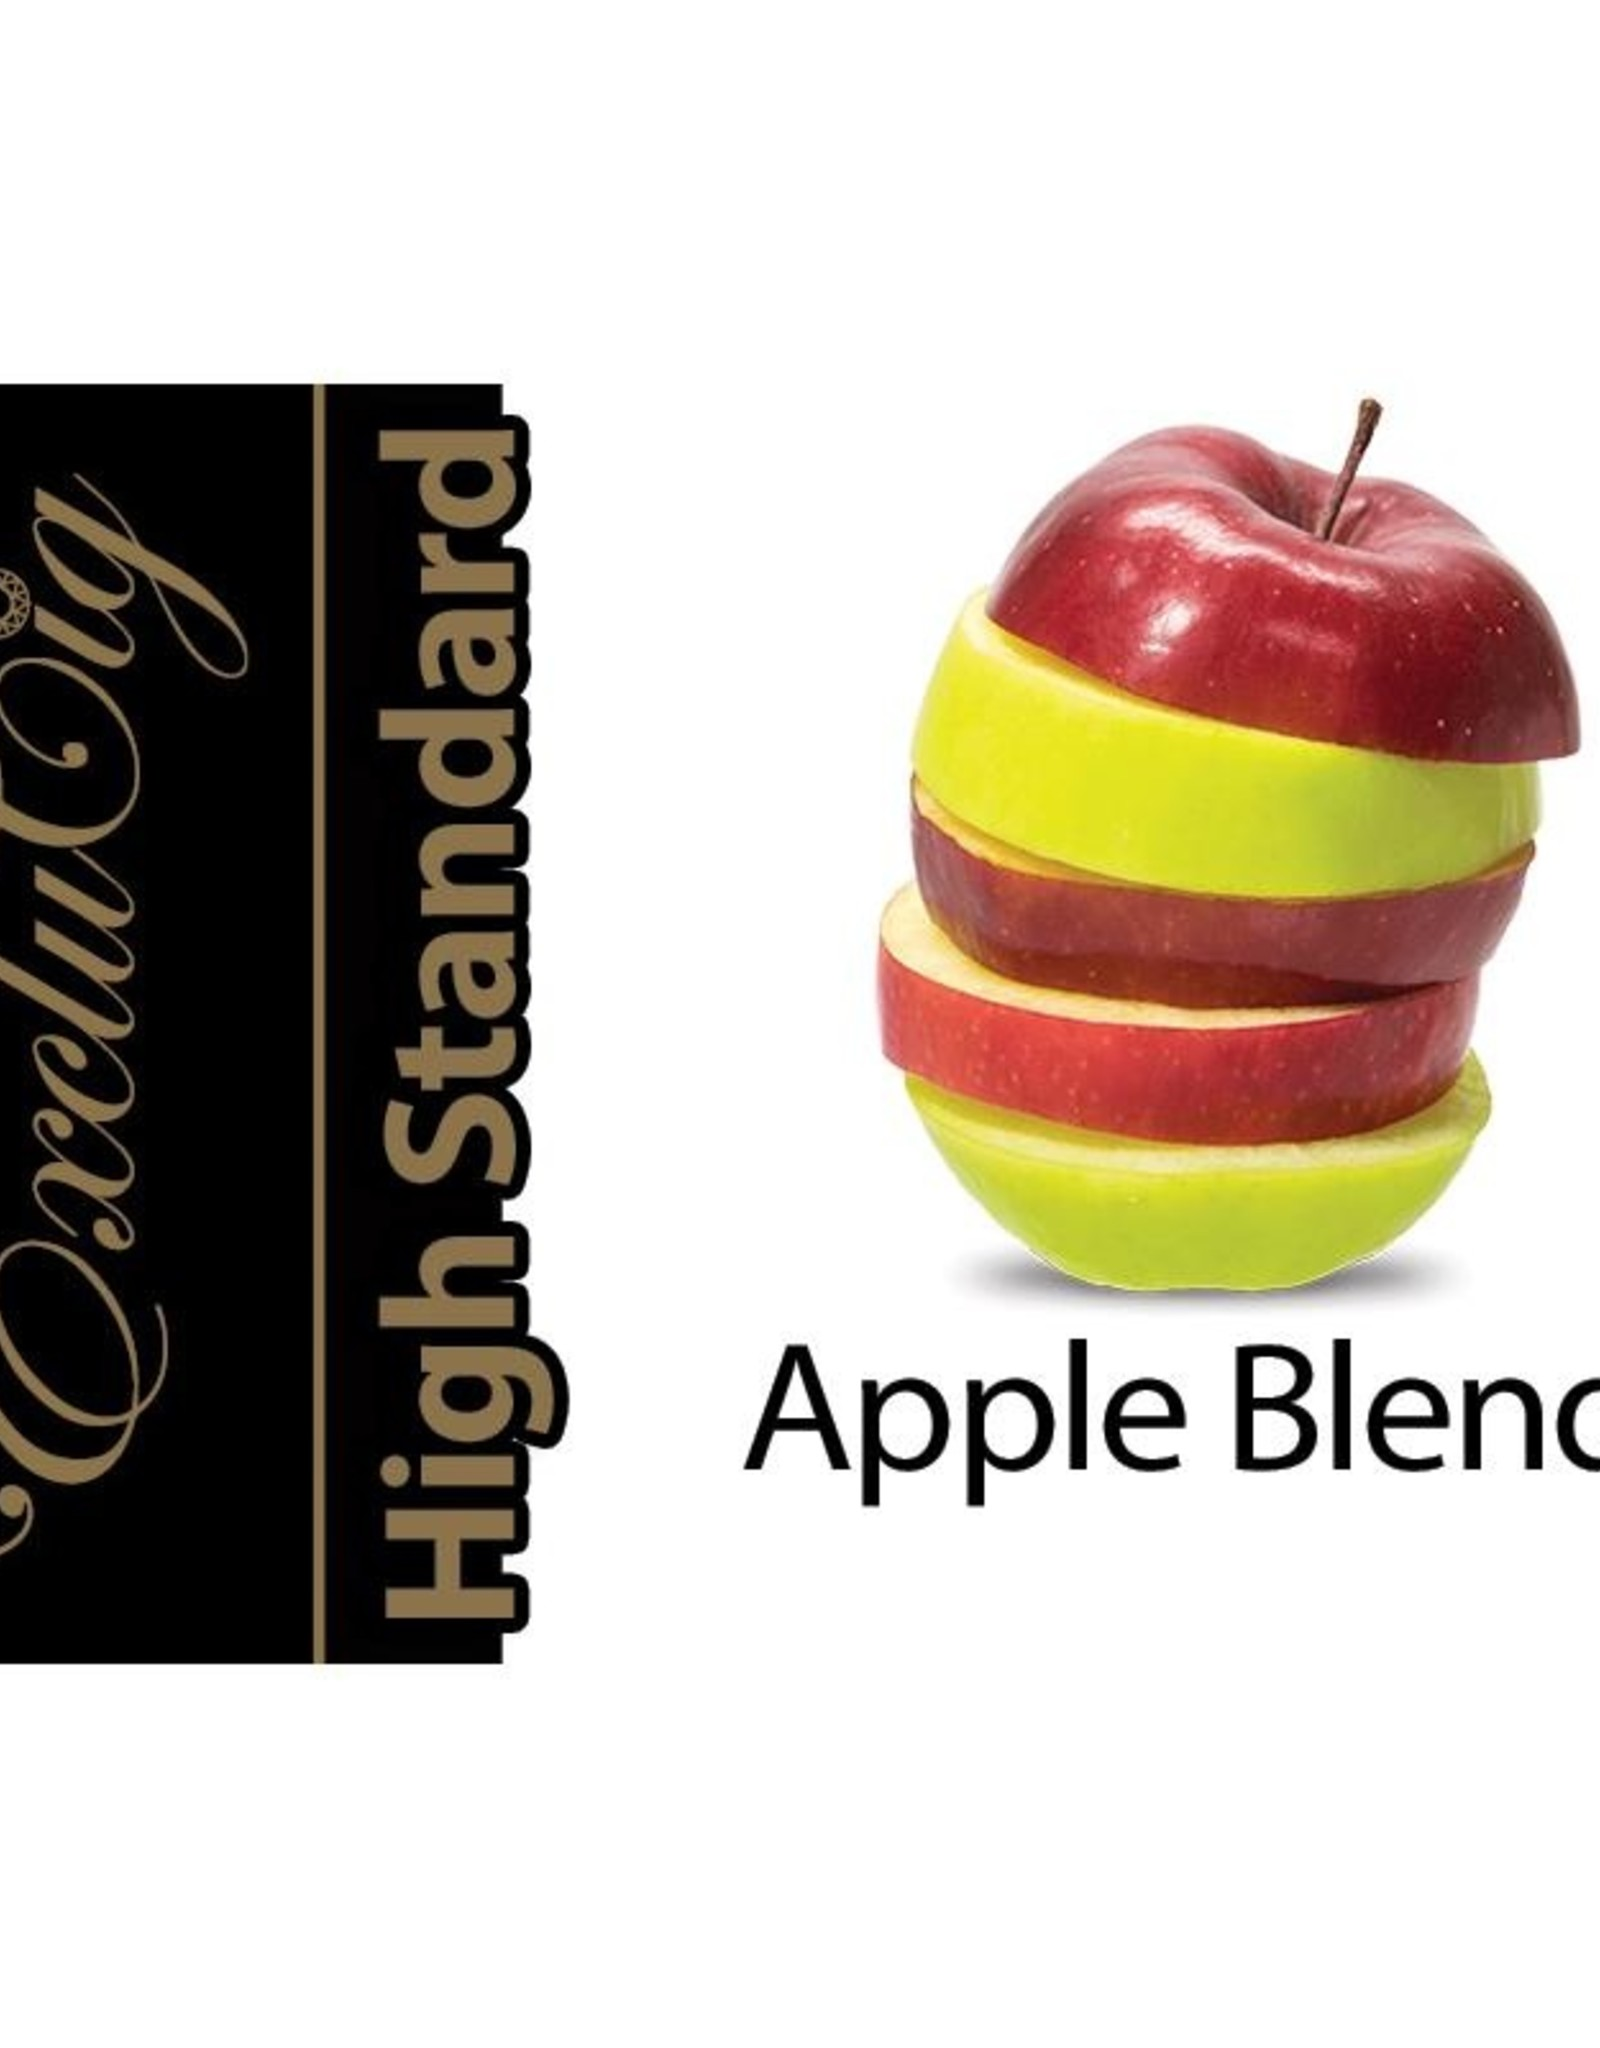 Exclucig Exclucig High Standard E-liquid Apple Blend 6 mg Nicotine